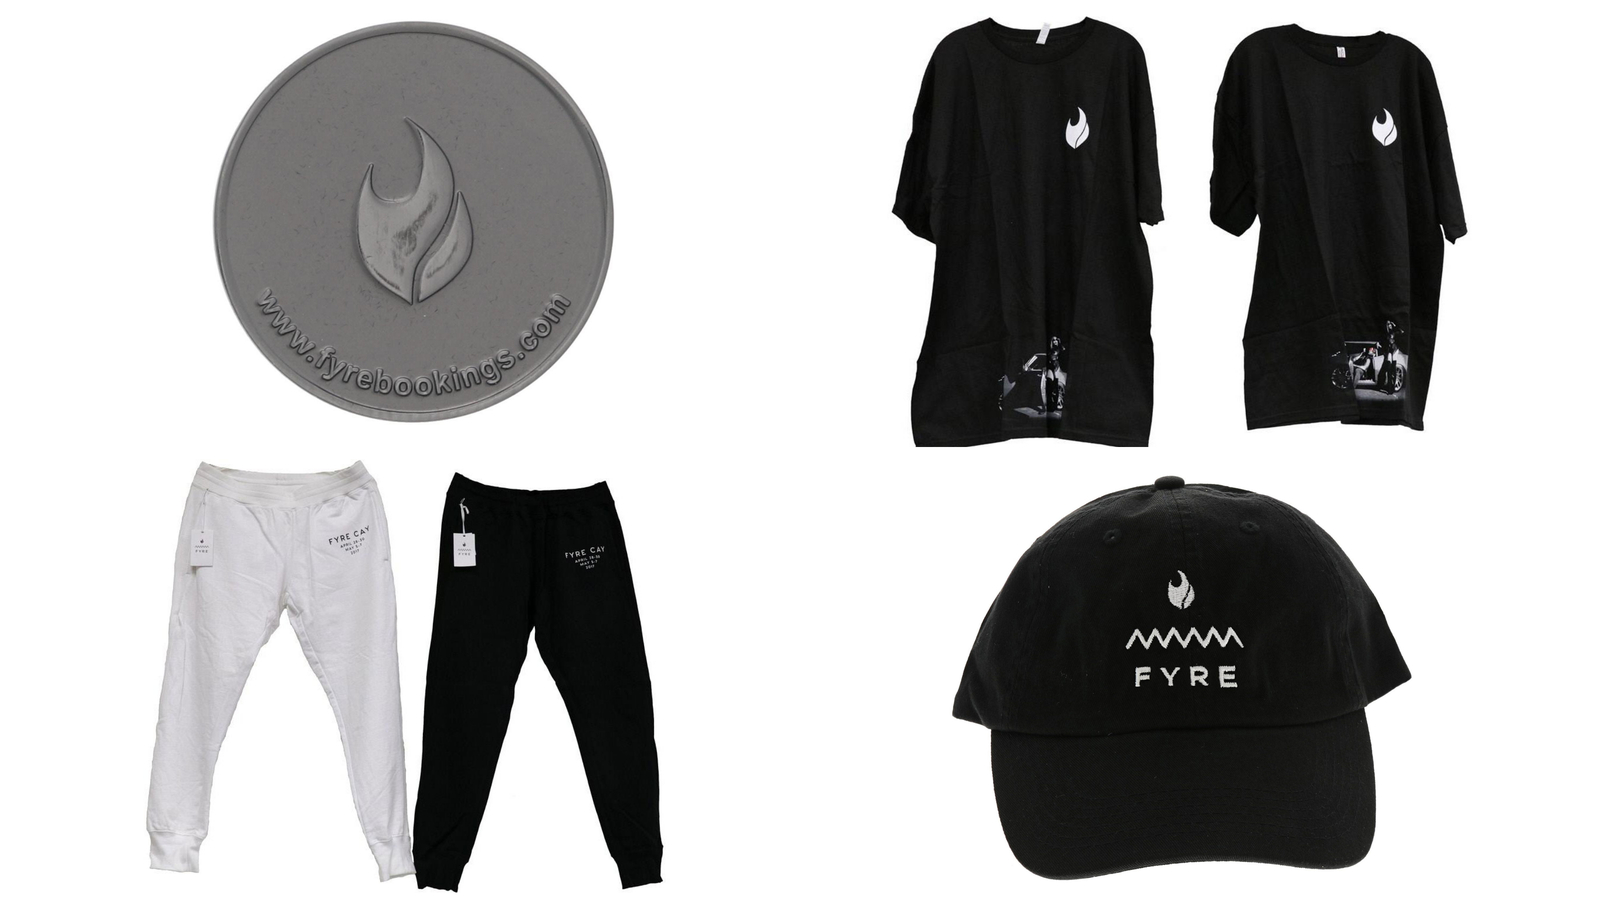 Fyre-branded tokens, shirts, sweatpants and hats are for sale in the online auction. (Gaston & Sheehan via CNN)